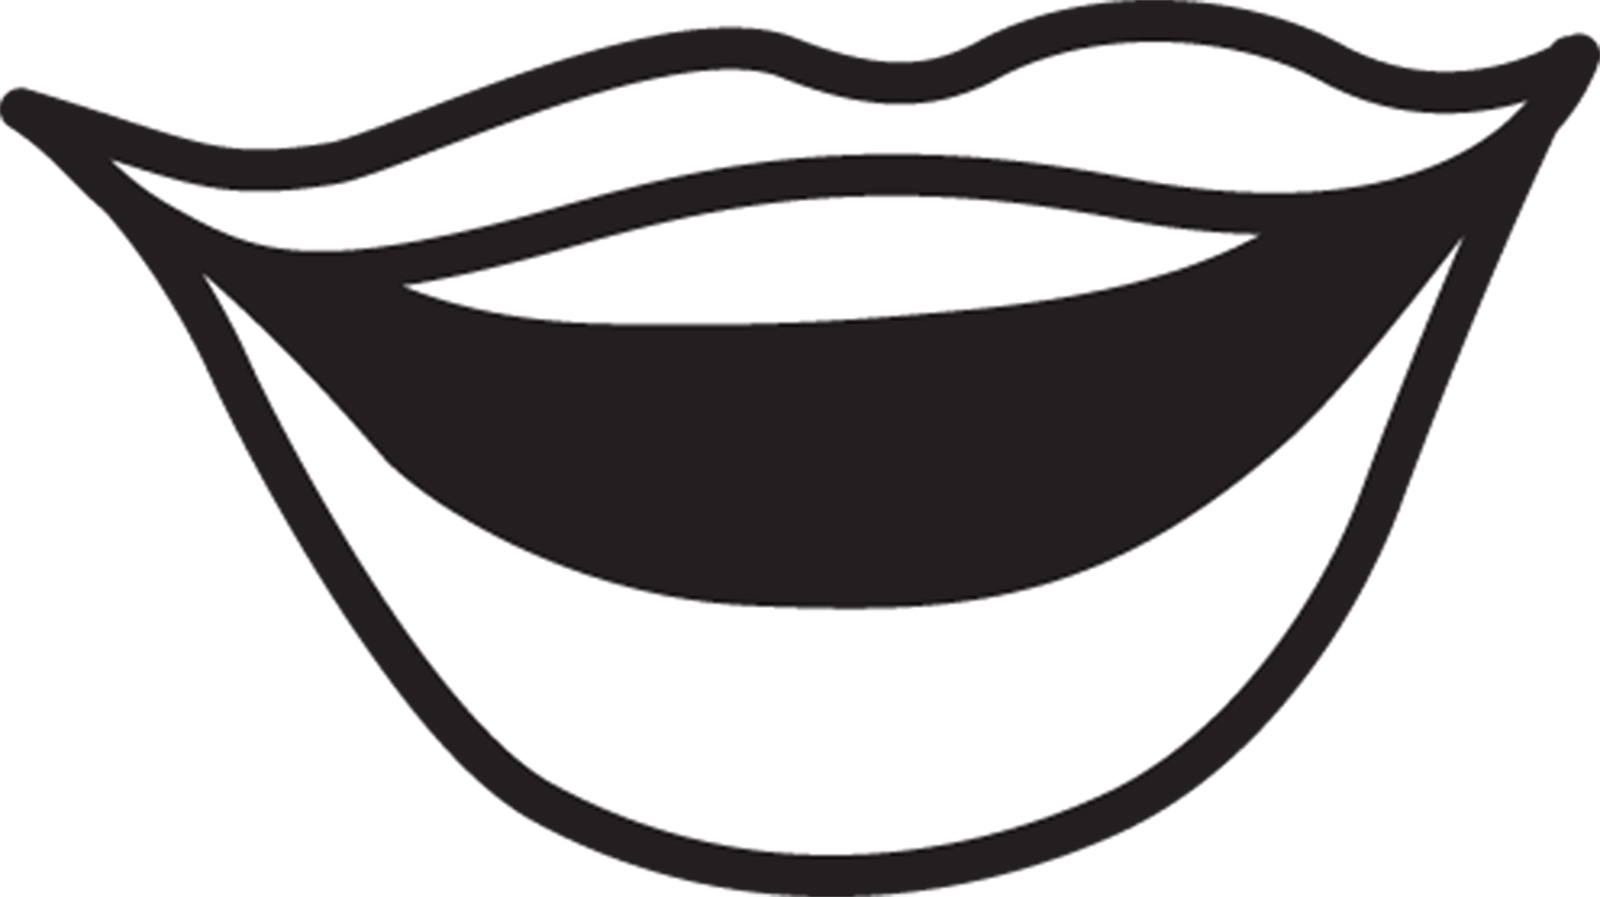 Mouth Clip Art Black And White-mouth clip art black and white-6